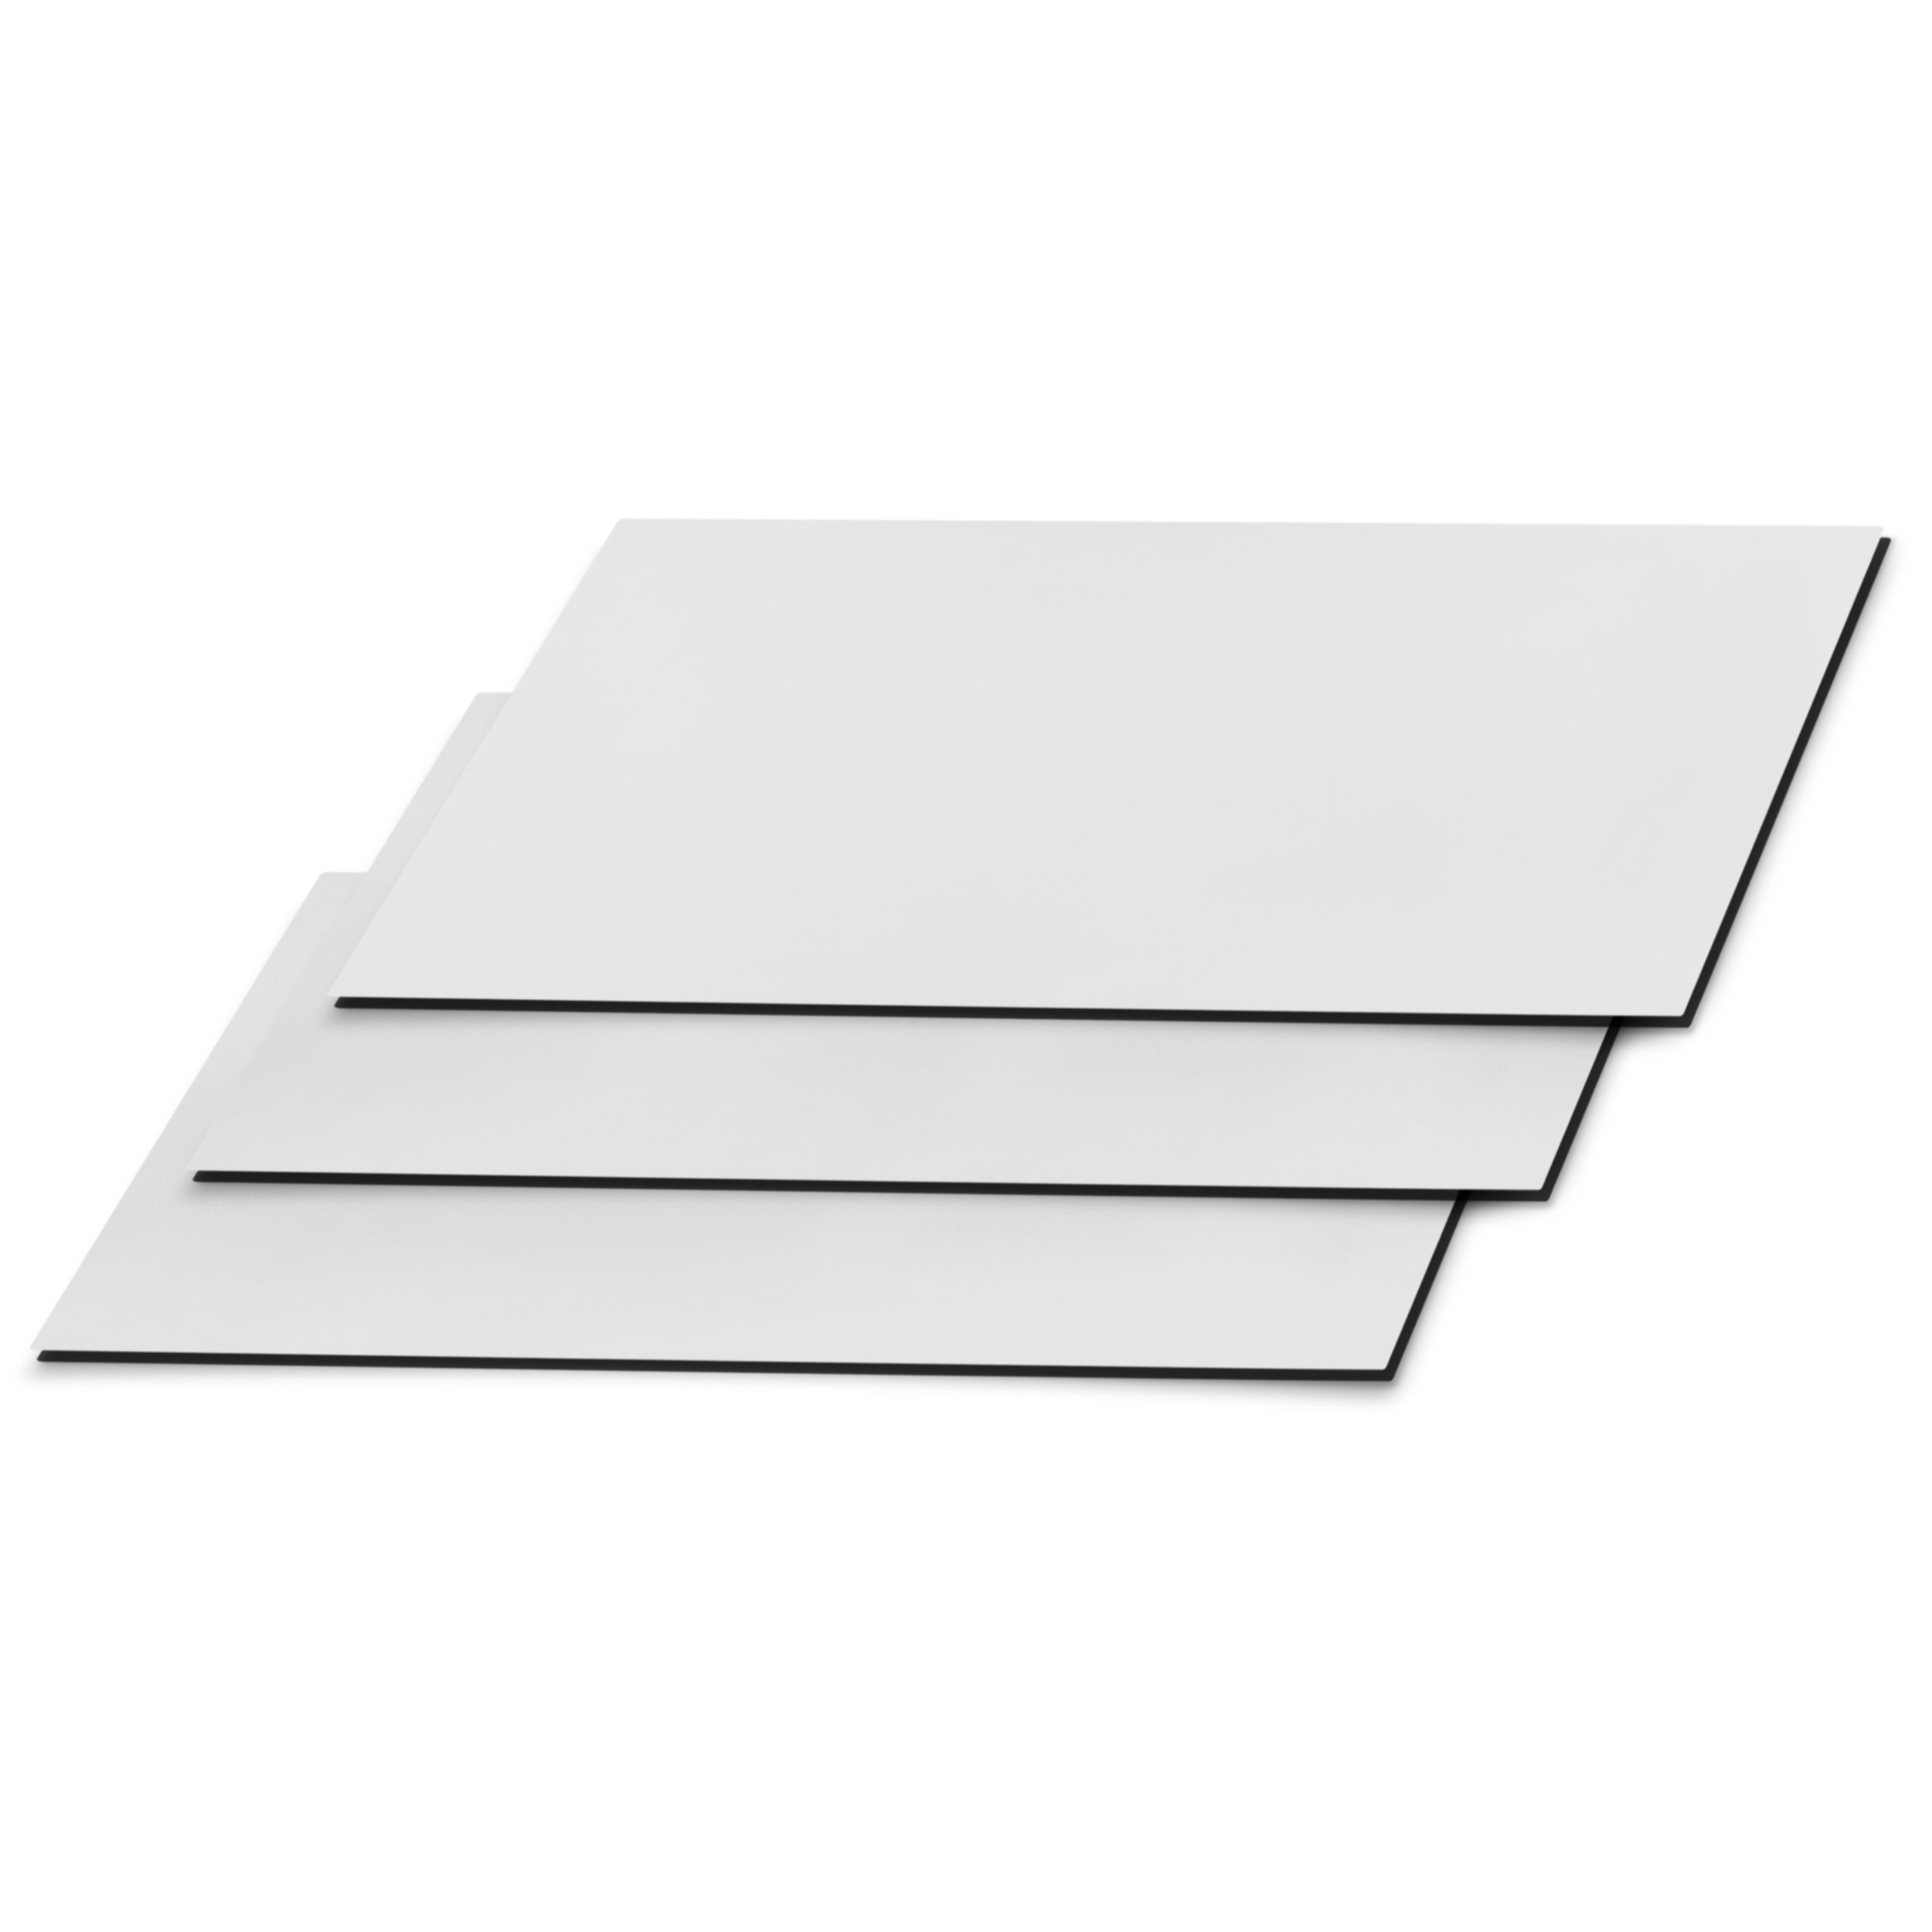 """8.5"""" x 15 """" Extra Magnetic Floor Vent Covers (3-Pack) Double Thick Magnet For Floor Air Registers - For RV, Home HVAC, AC And Furnace Vents (Not For Ceiling Vents)"""